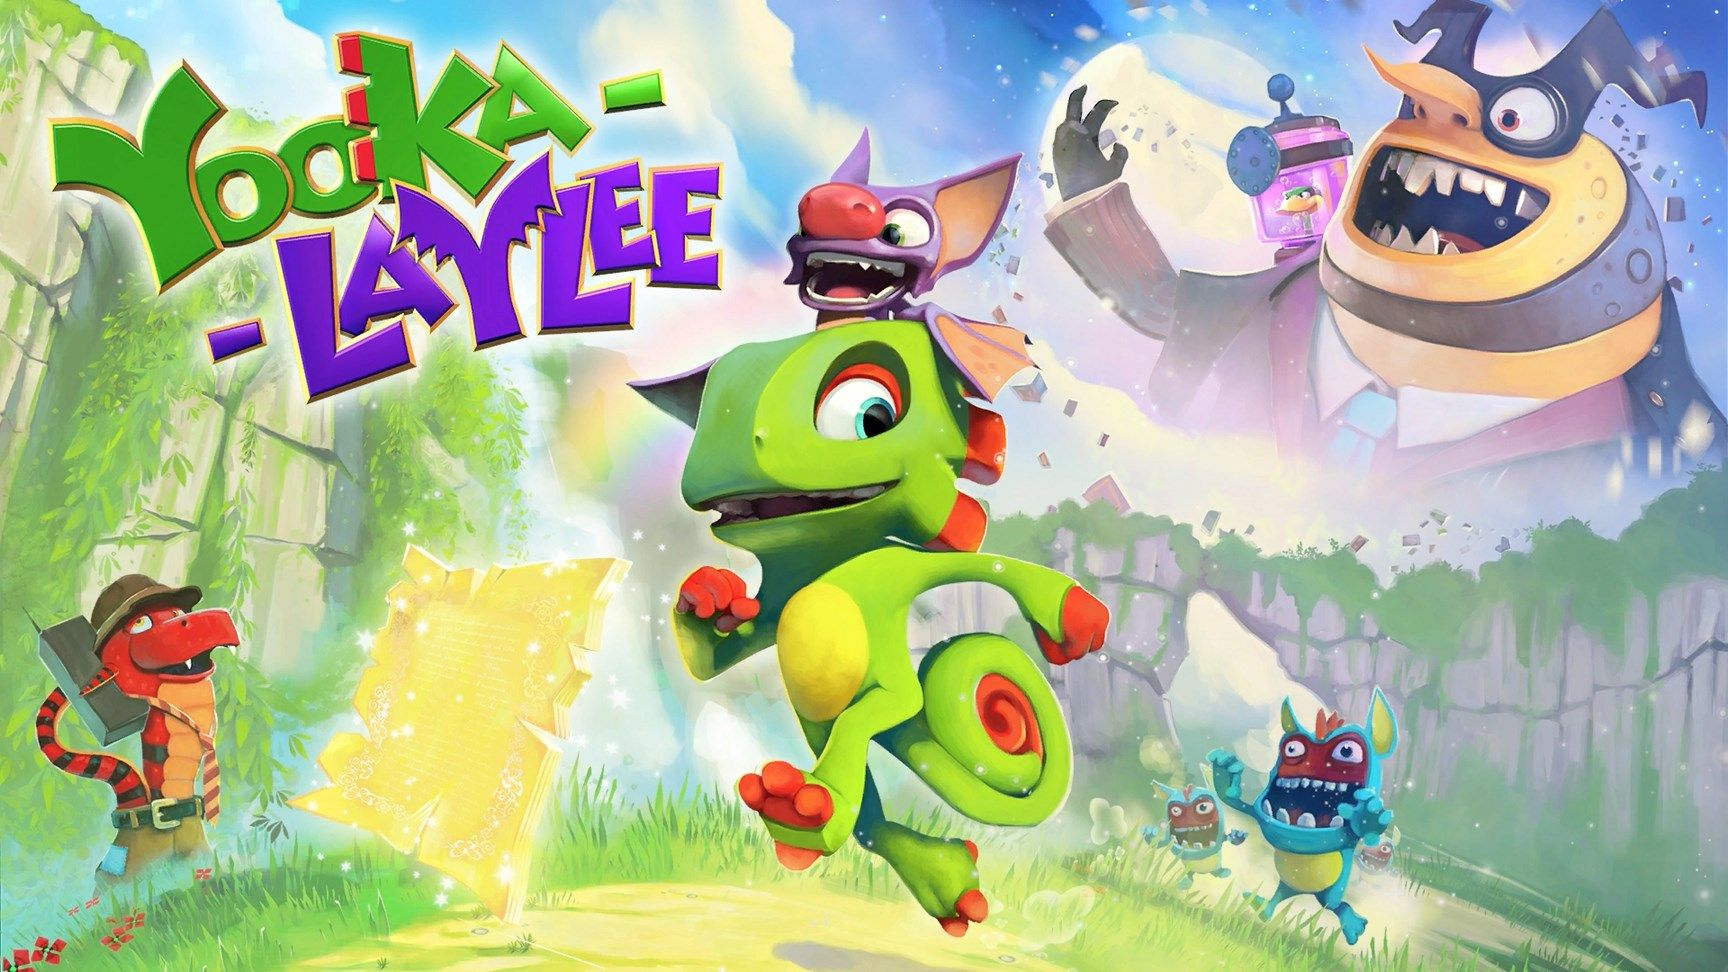 Don't call it a comeback. Playtonic's crowdfunded revival